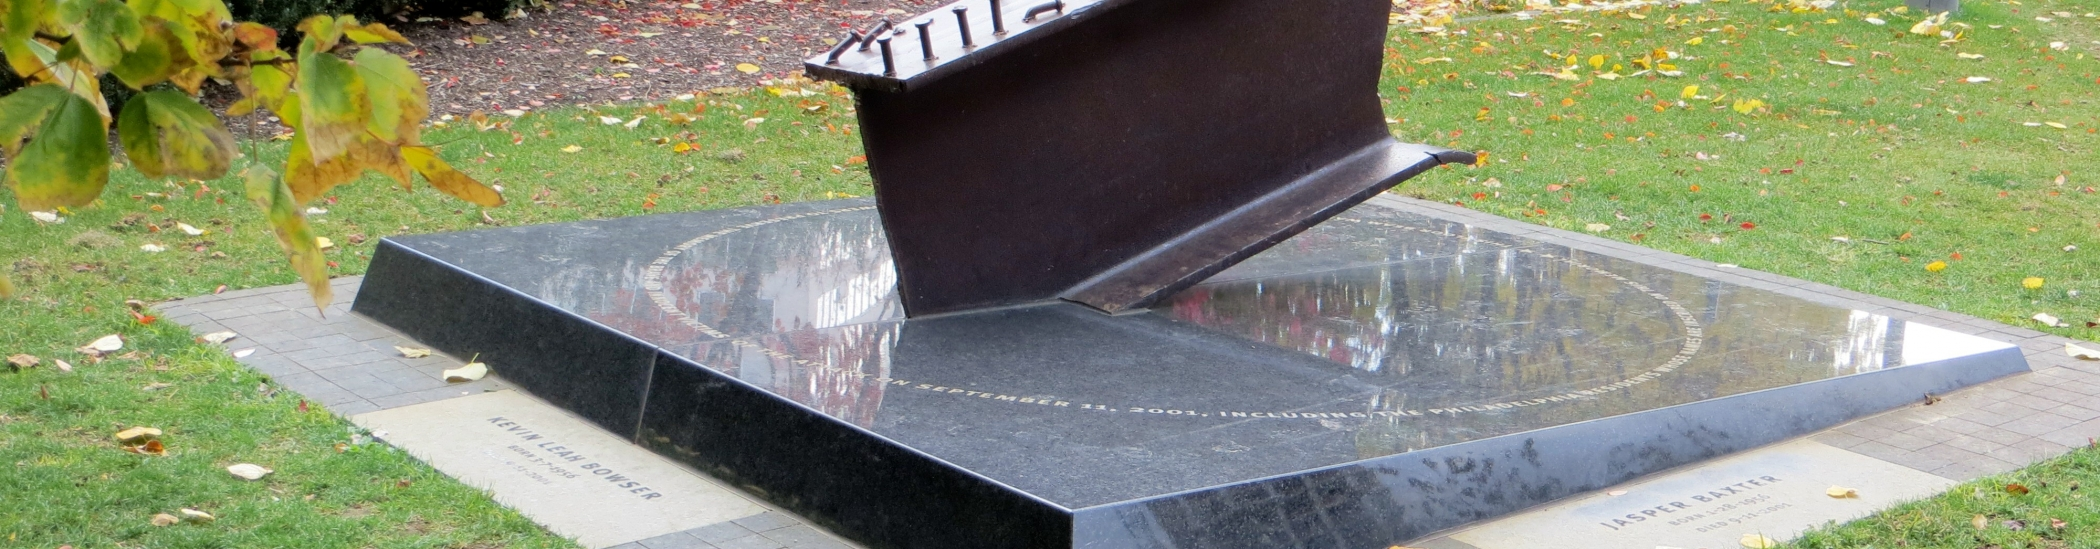 memorial with steel from the world trade center